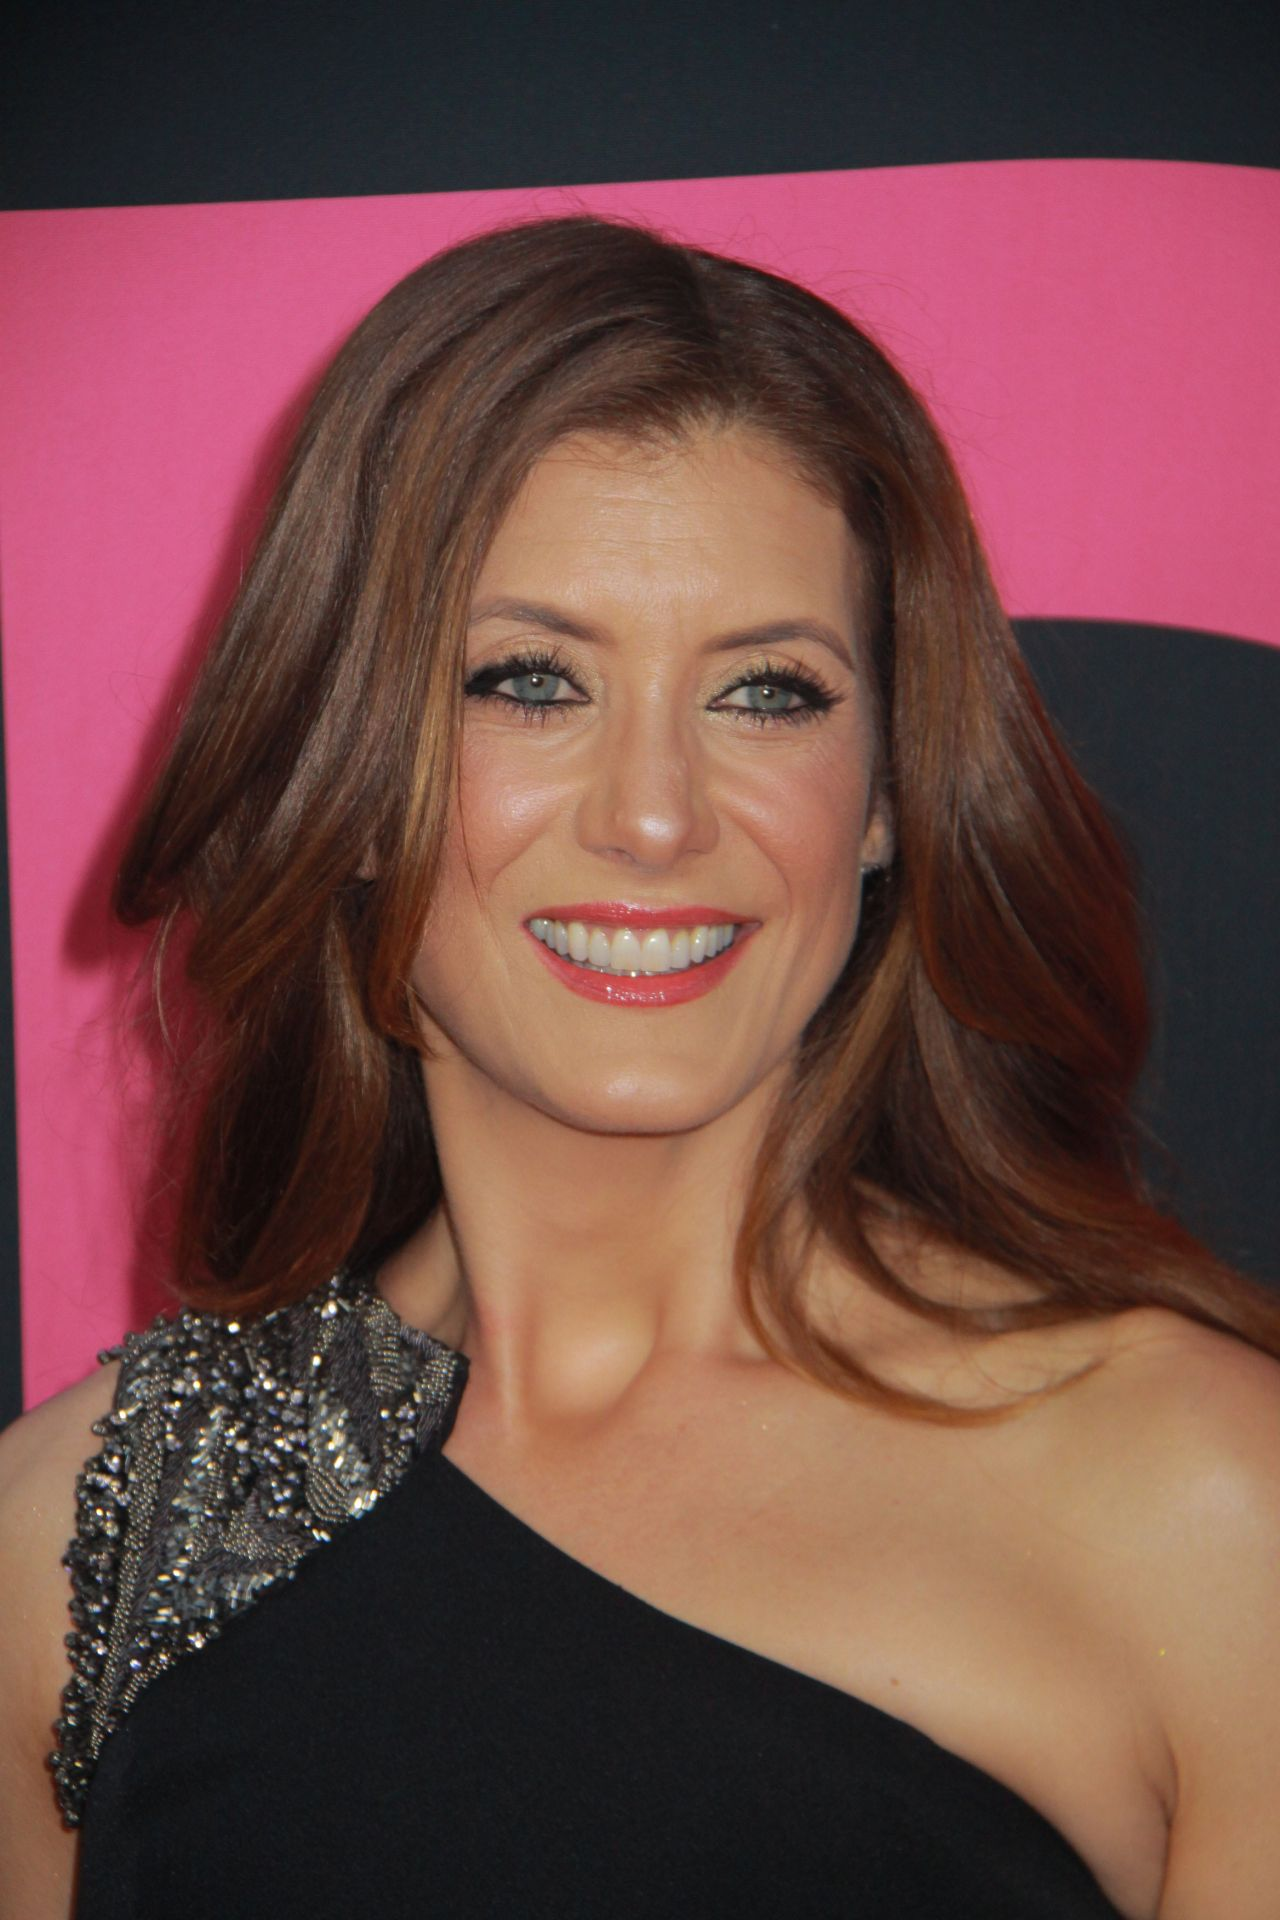 Kate Walsh Quot Girls Trip Quot World Premiere In La 07 13 2017